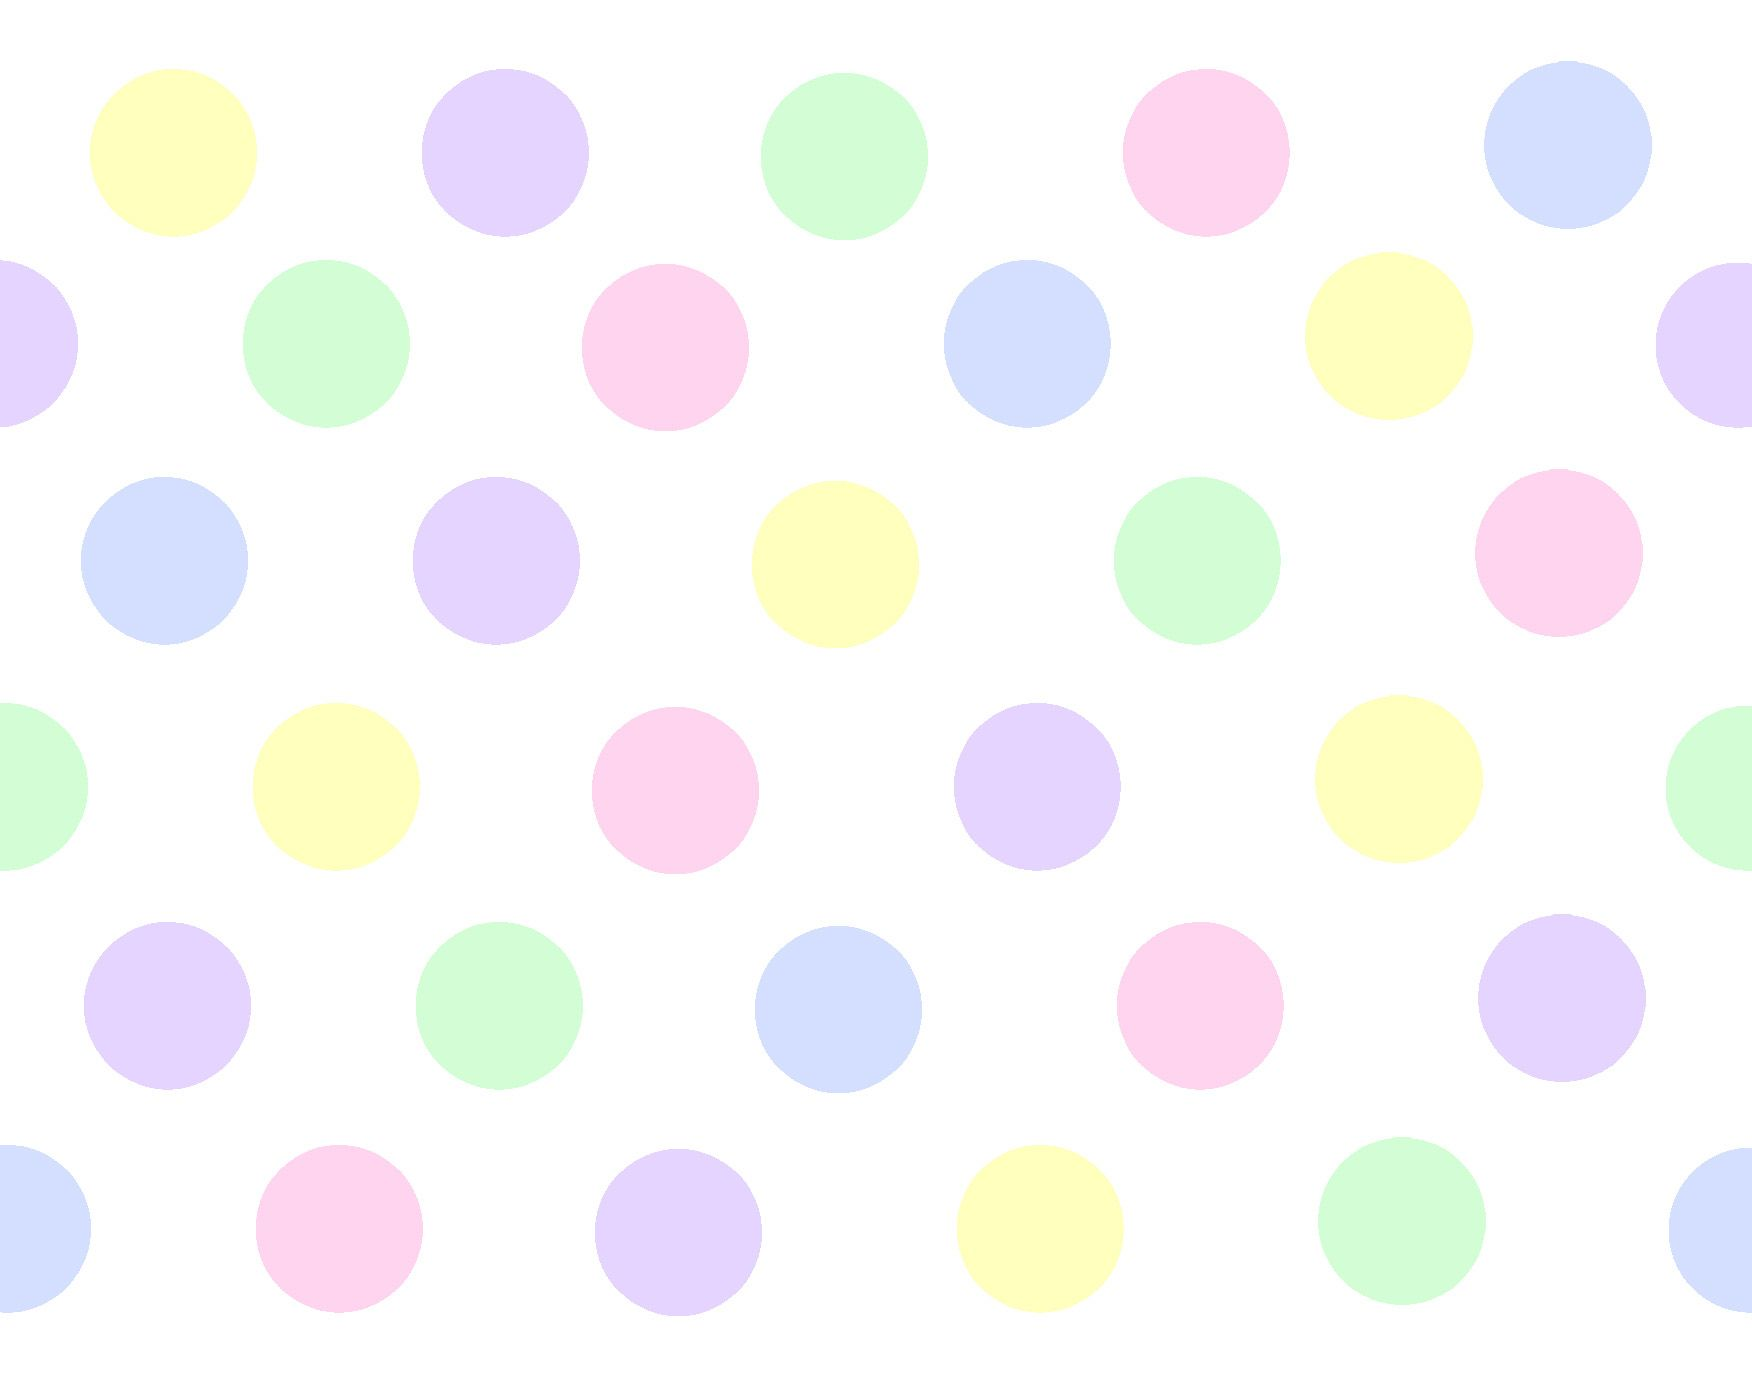 polka dots pastel - Google Search | polka dots : Put me in ...